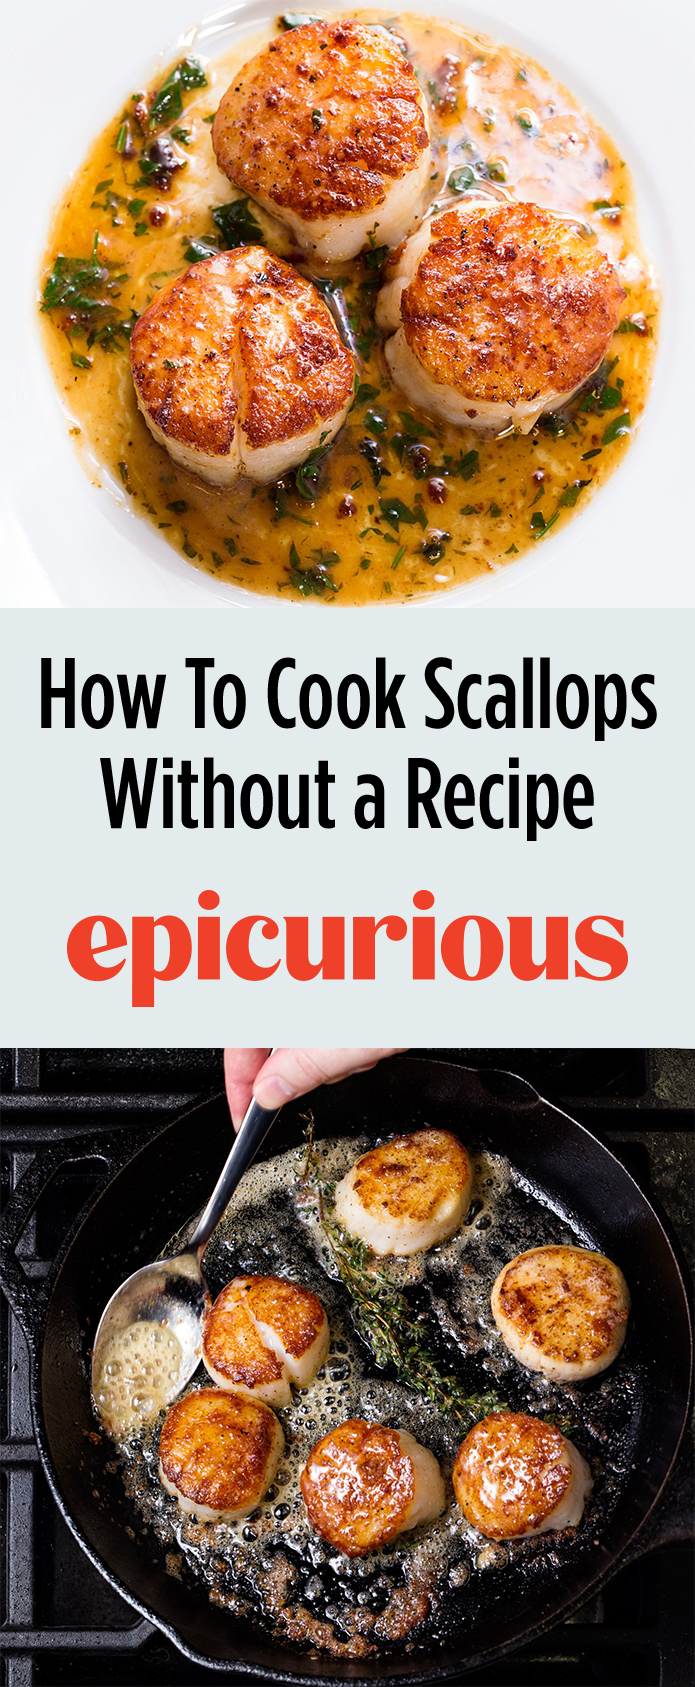 Impressive pan seared scallops dont require a recipe epicurious impressive pan seared scallops dont require a recipe epicurious seafoodrecipes forumfinder Choice Image